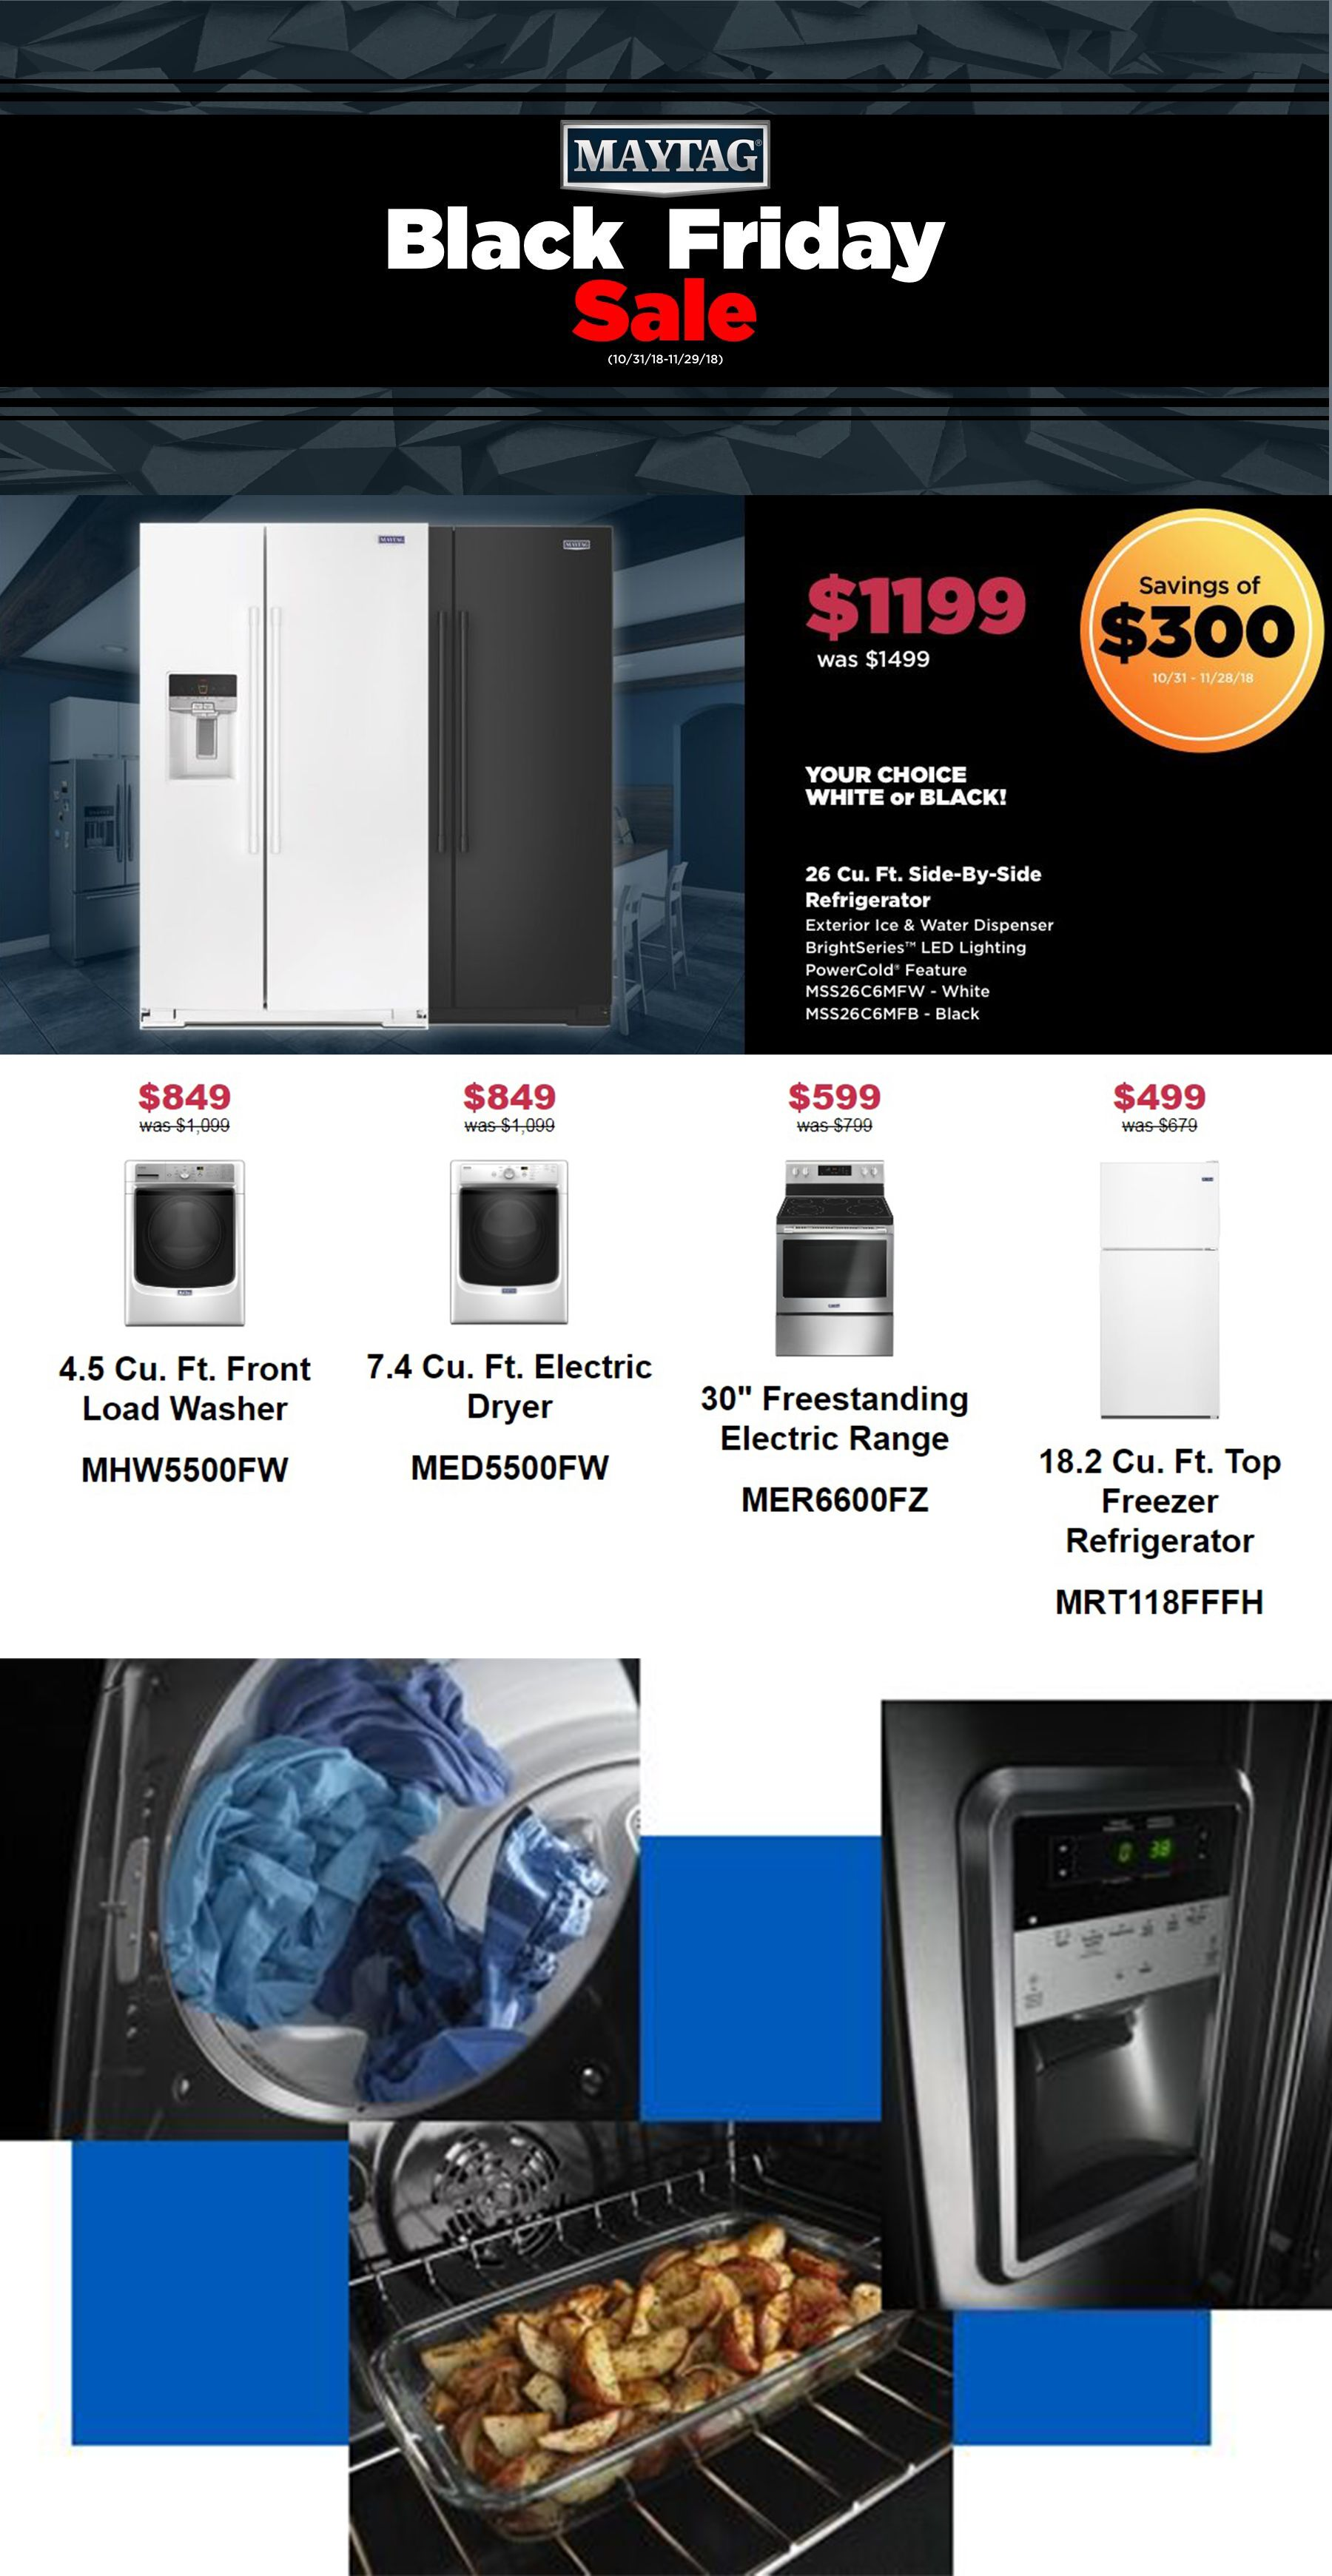 Maytag black friday sale washers dryers u kitchen ranges until